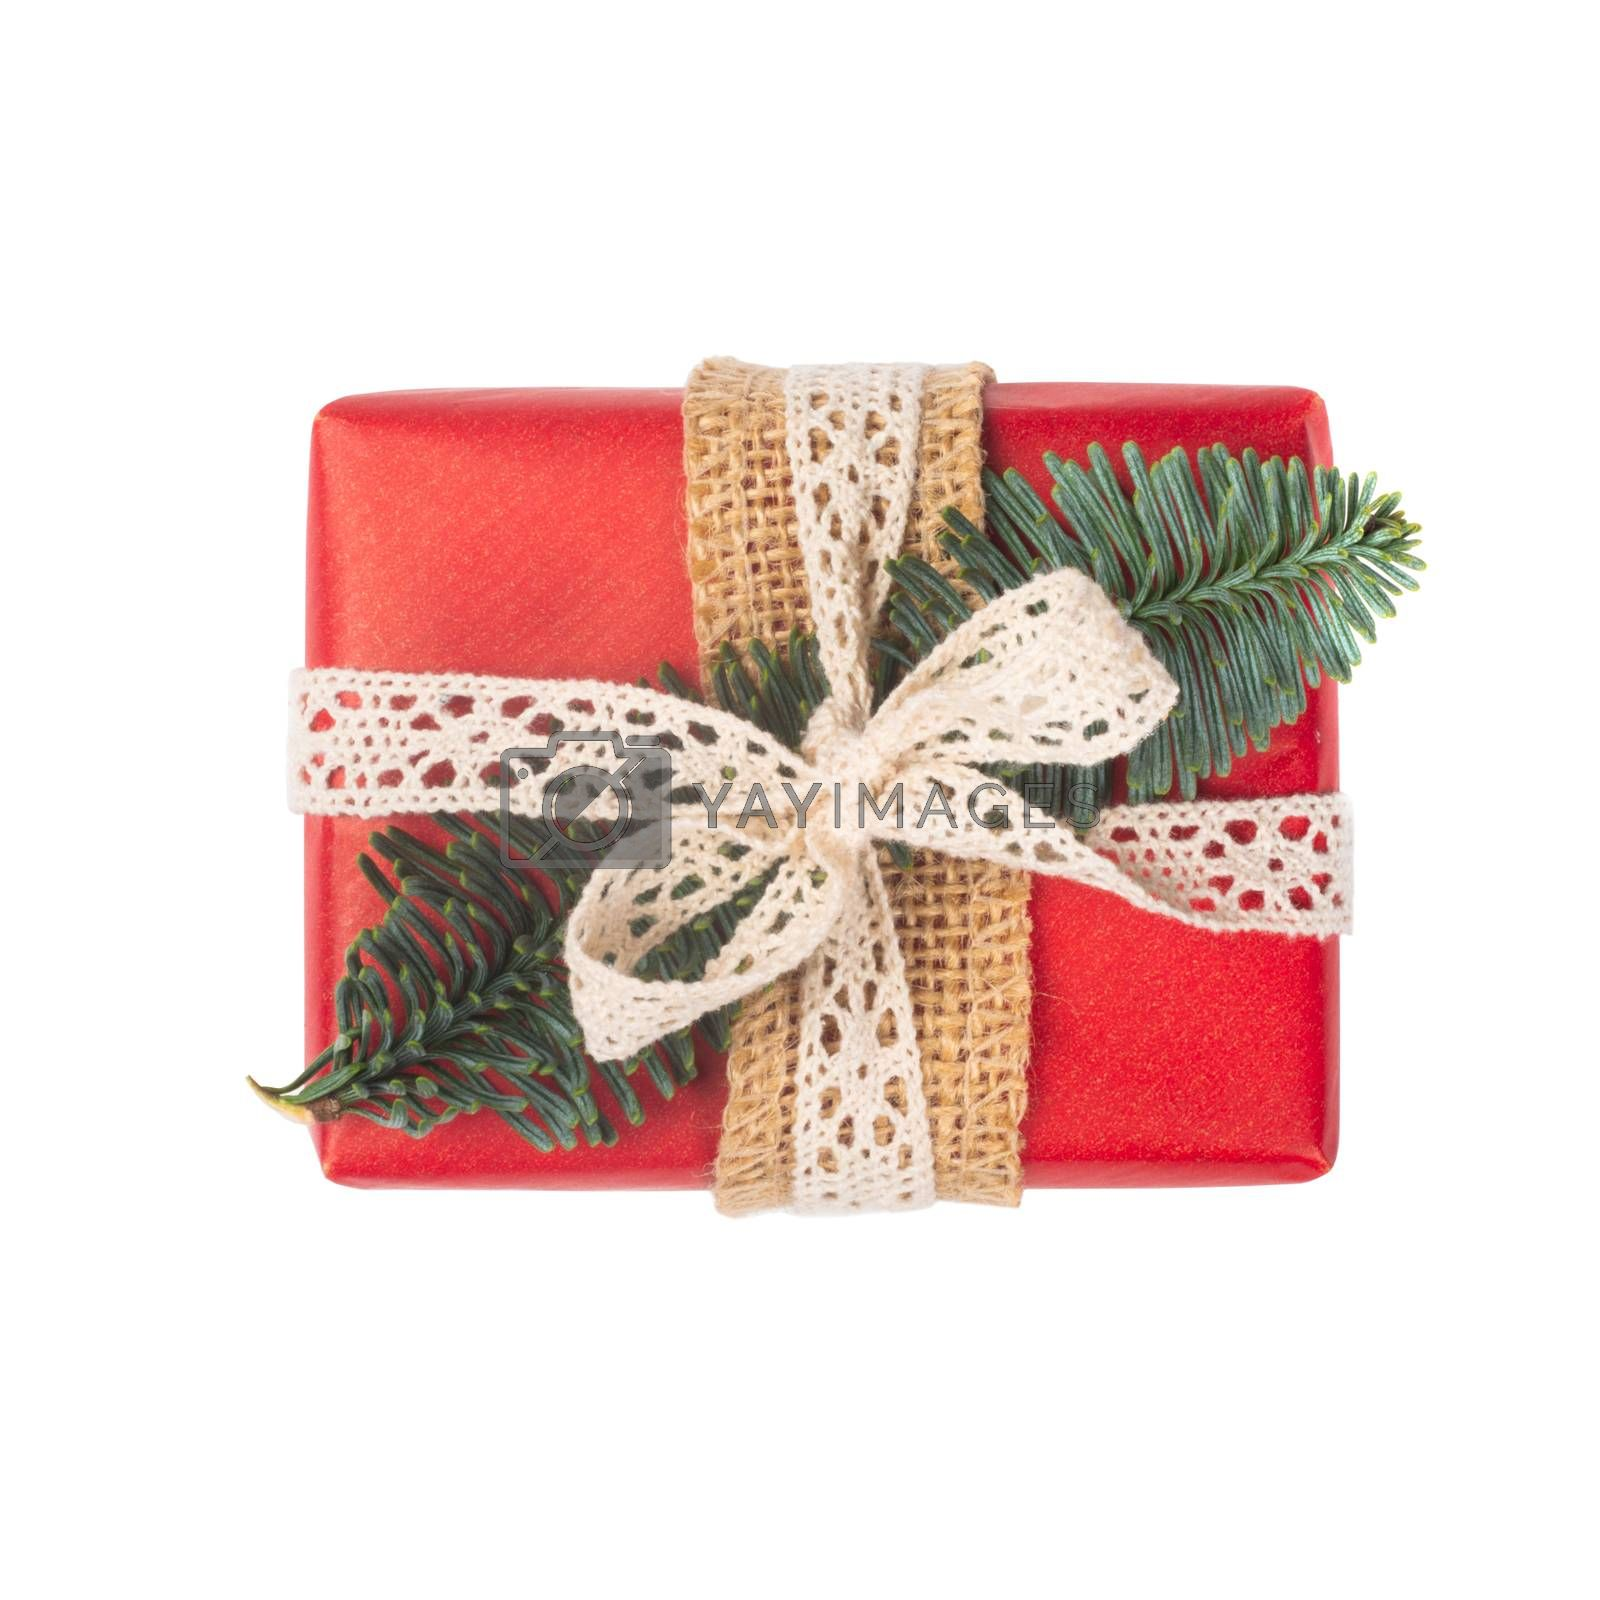 Wrapped vintage christmas gift box with red ribbon bow, isolated on white